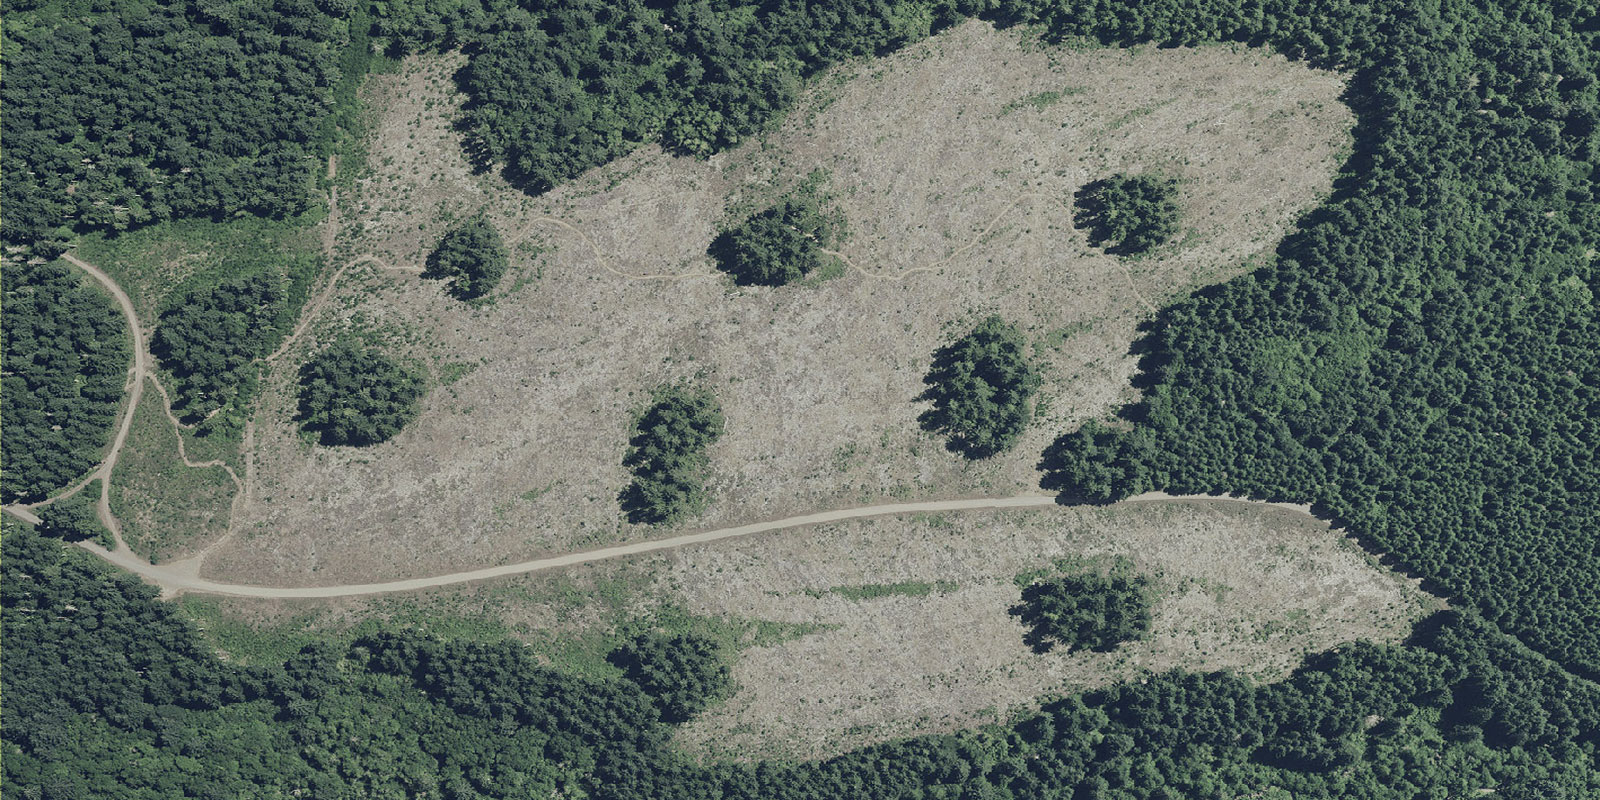 Aerial view of aggregated retention logged lands, which leaves patches of undisturbed trees.